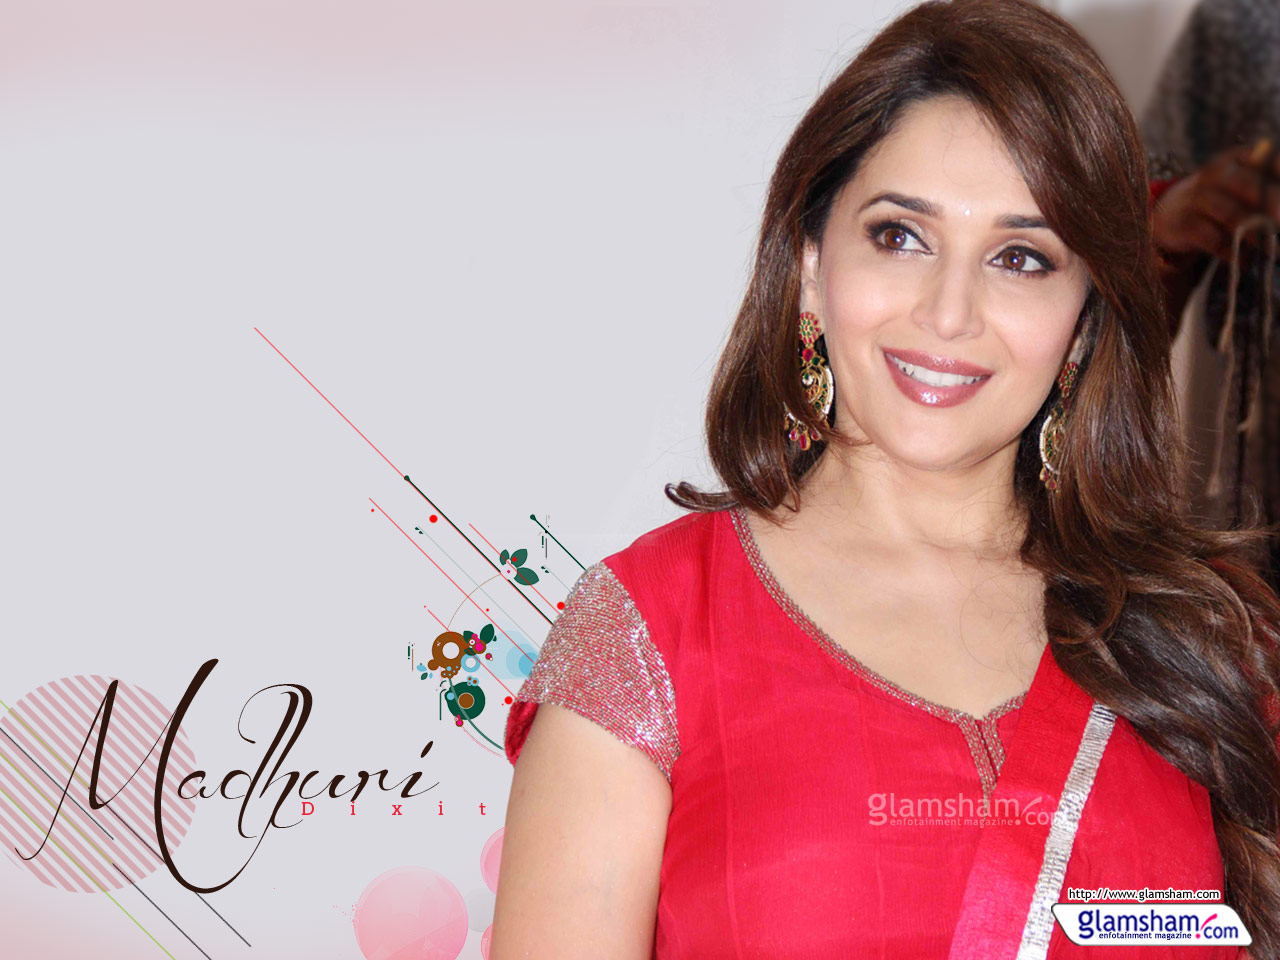 Madhuri Dixit Images Download Img Pic 1280x960